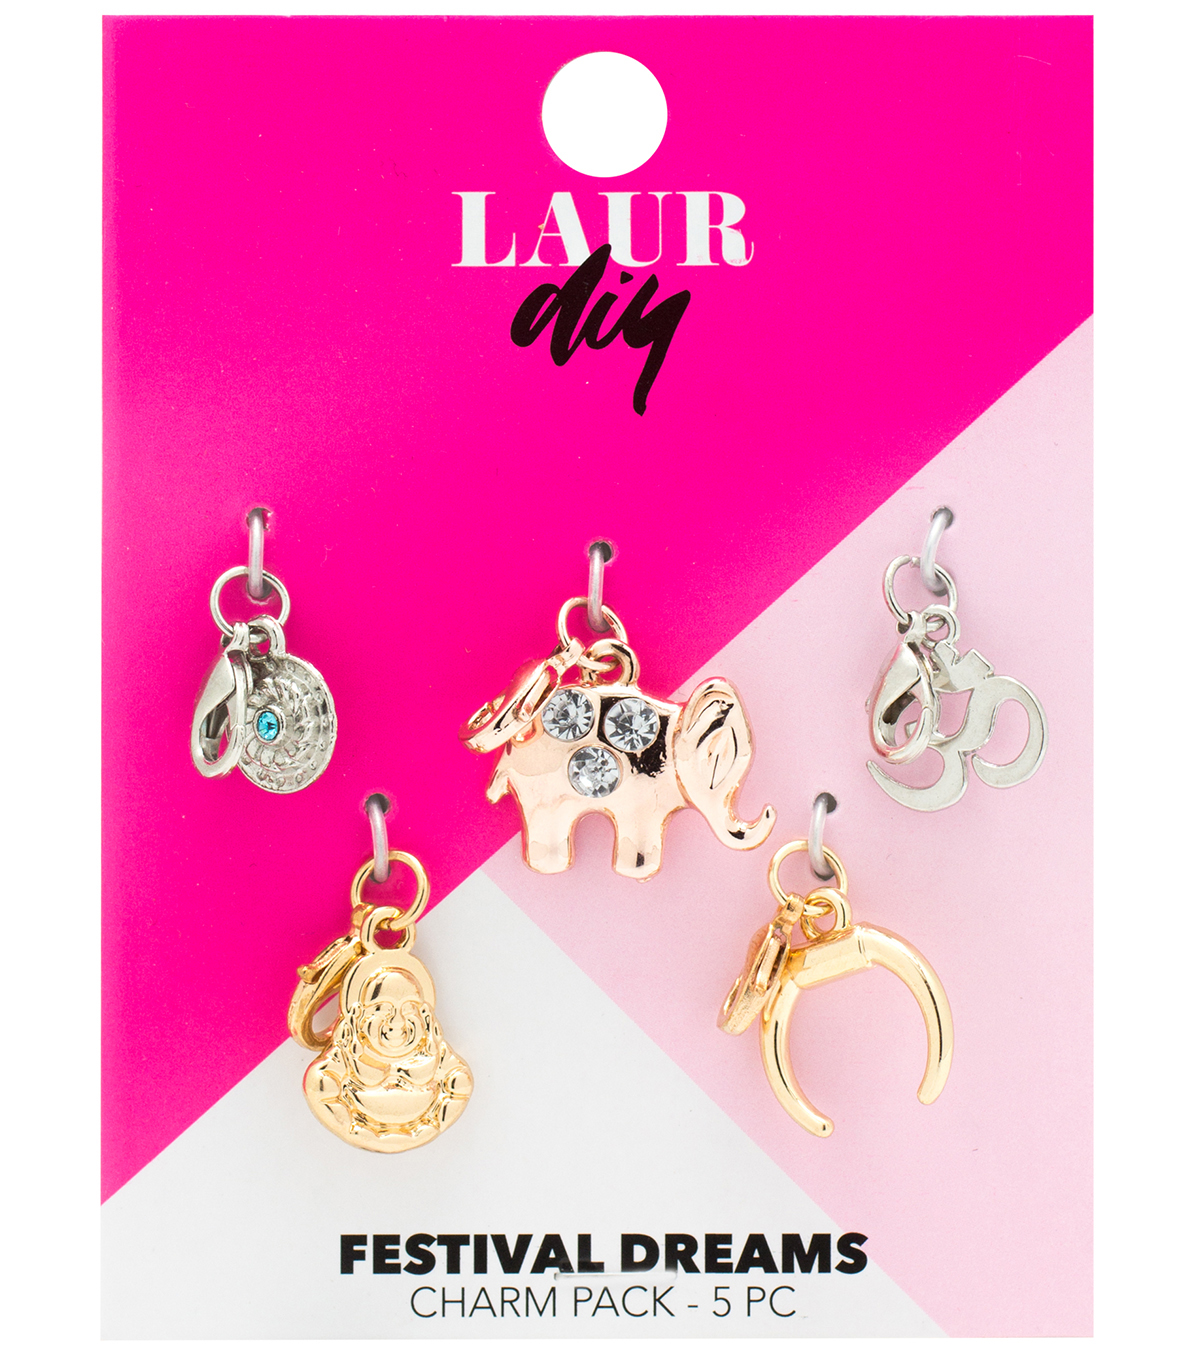 LaurDIY 5 pk Festival Dreams Charms